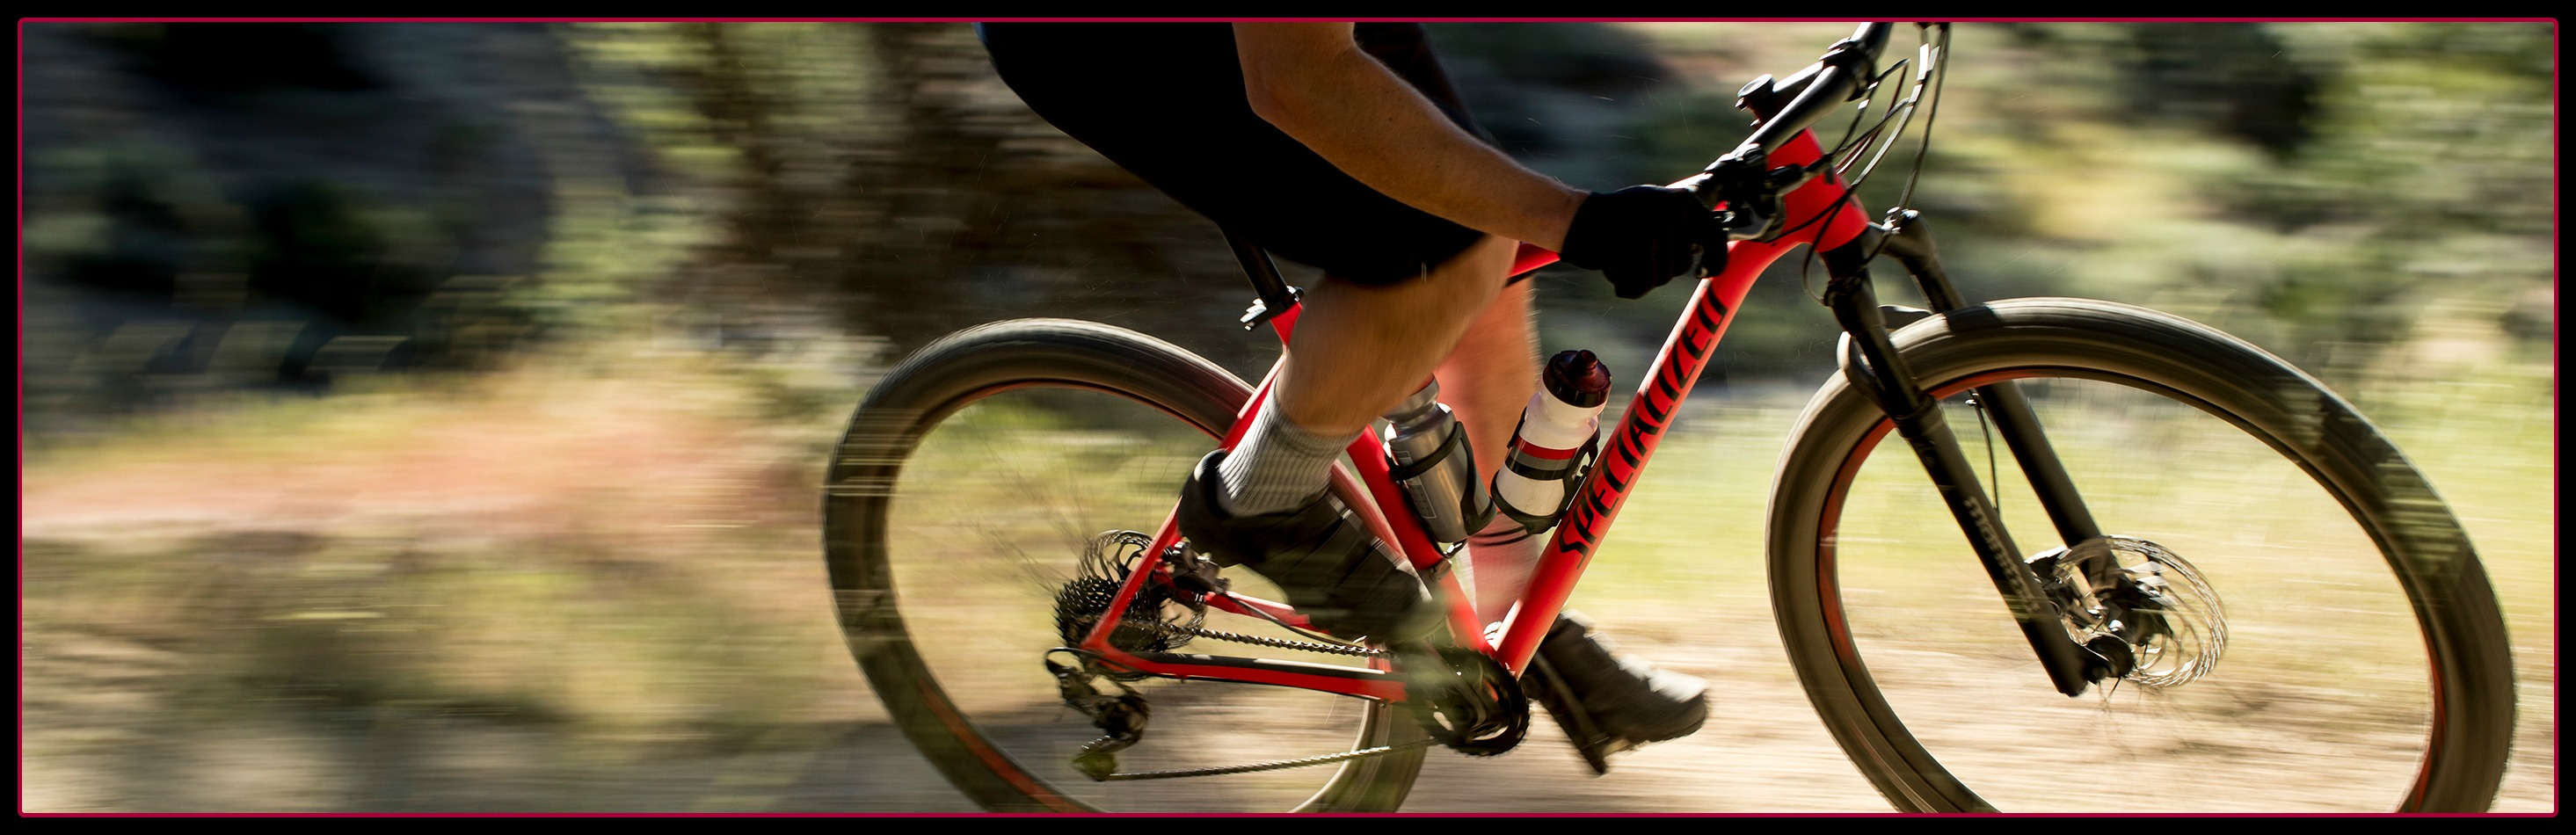 Specialized Mountain Bikes In Stock Now!